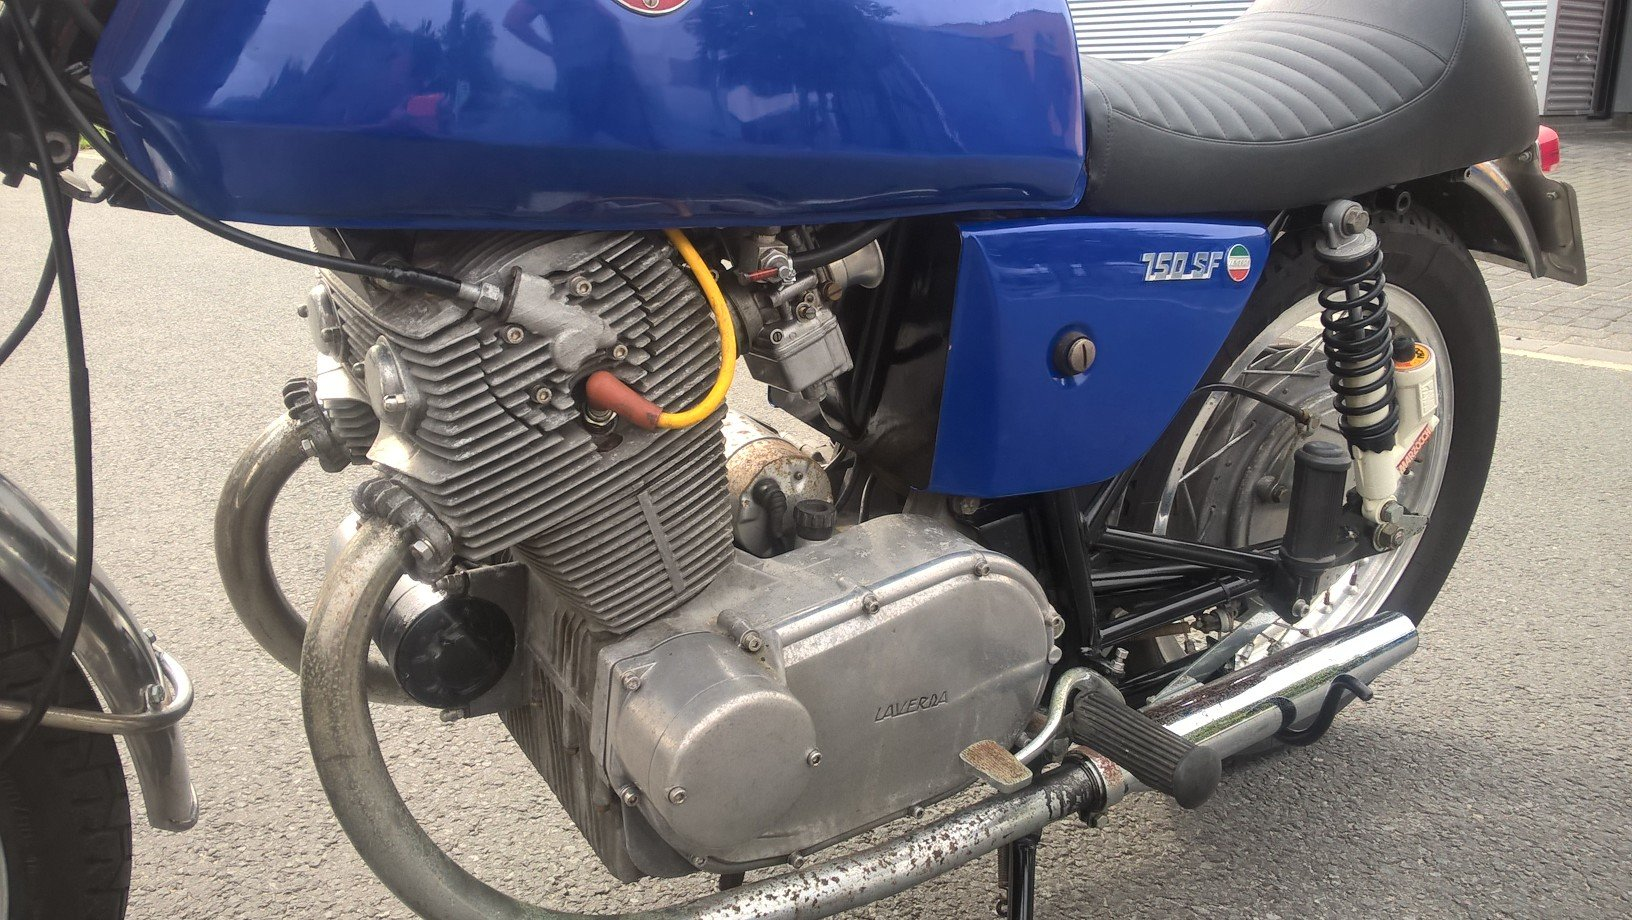 1971 Laverda 750 SF drumbrake type For Sale (picture 3 of 6)